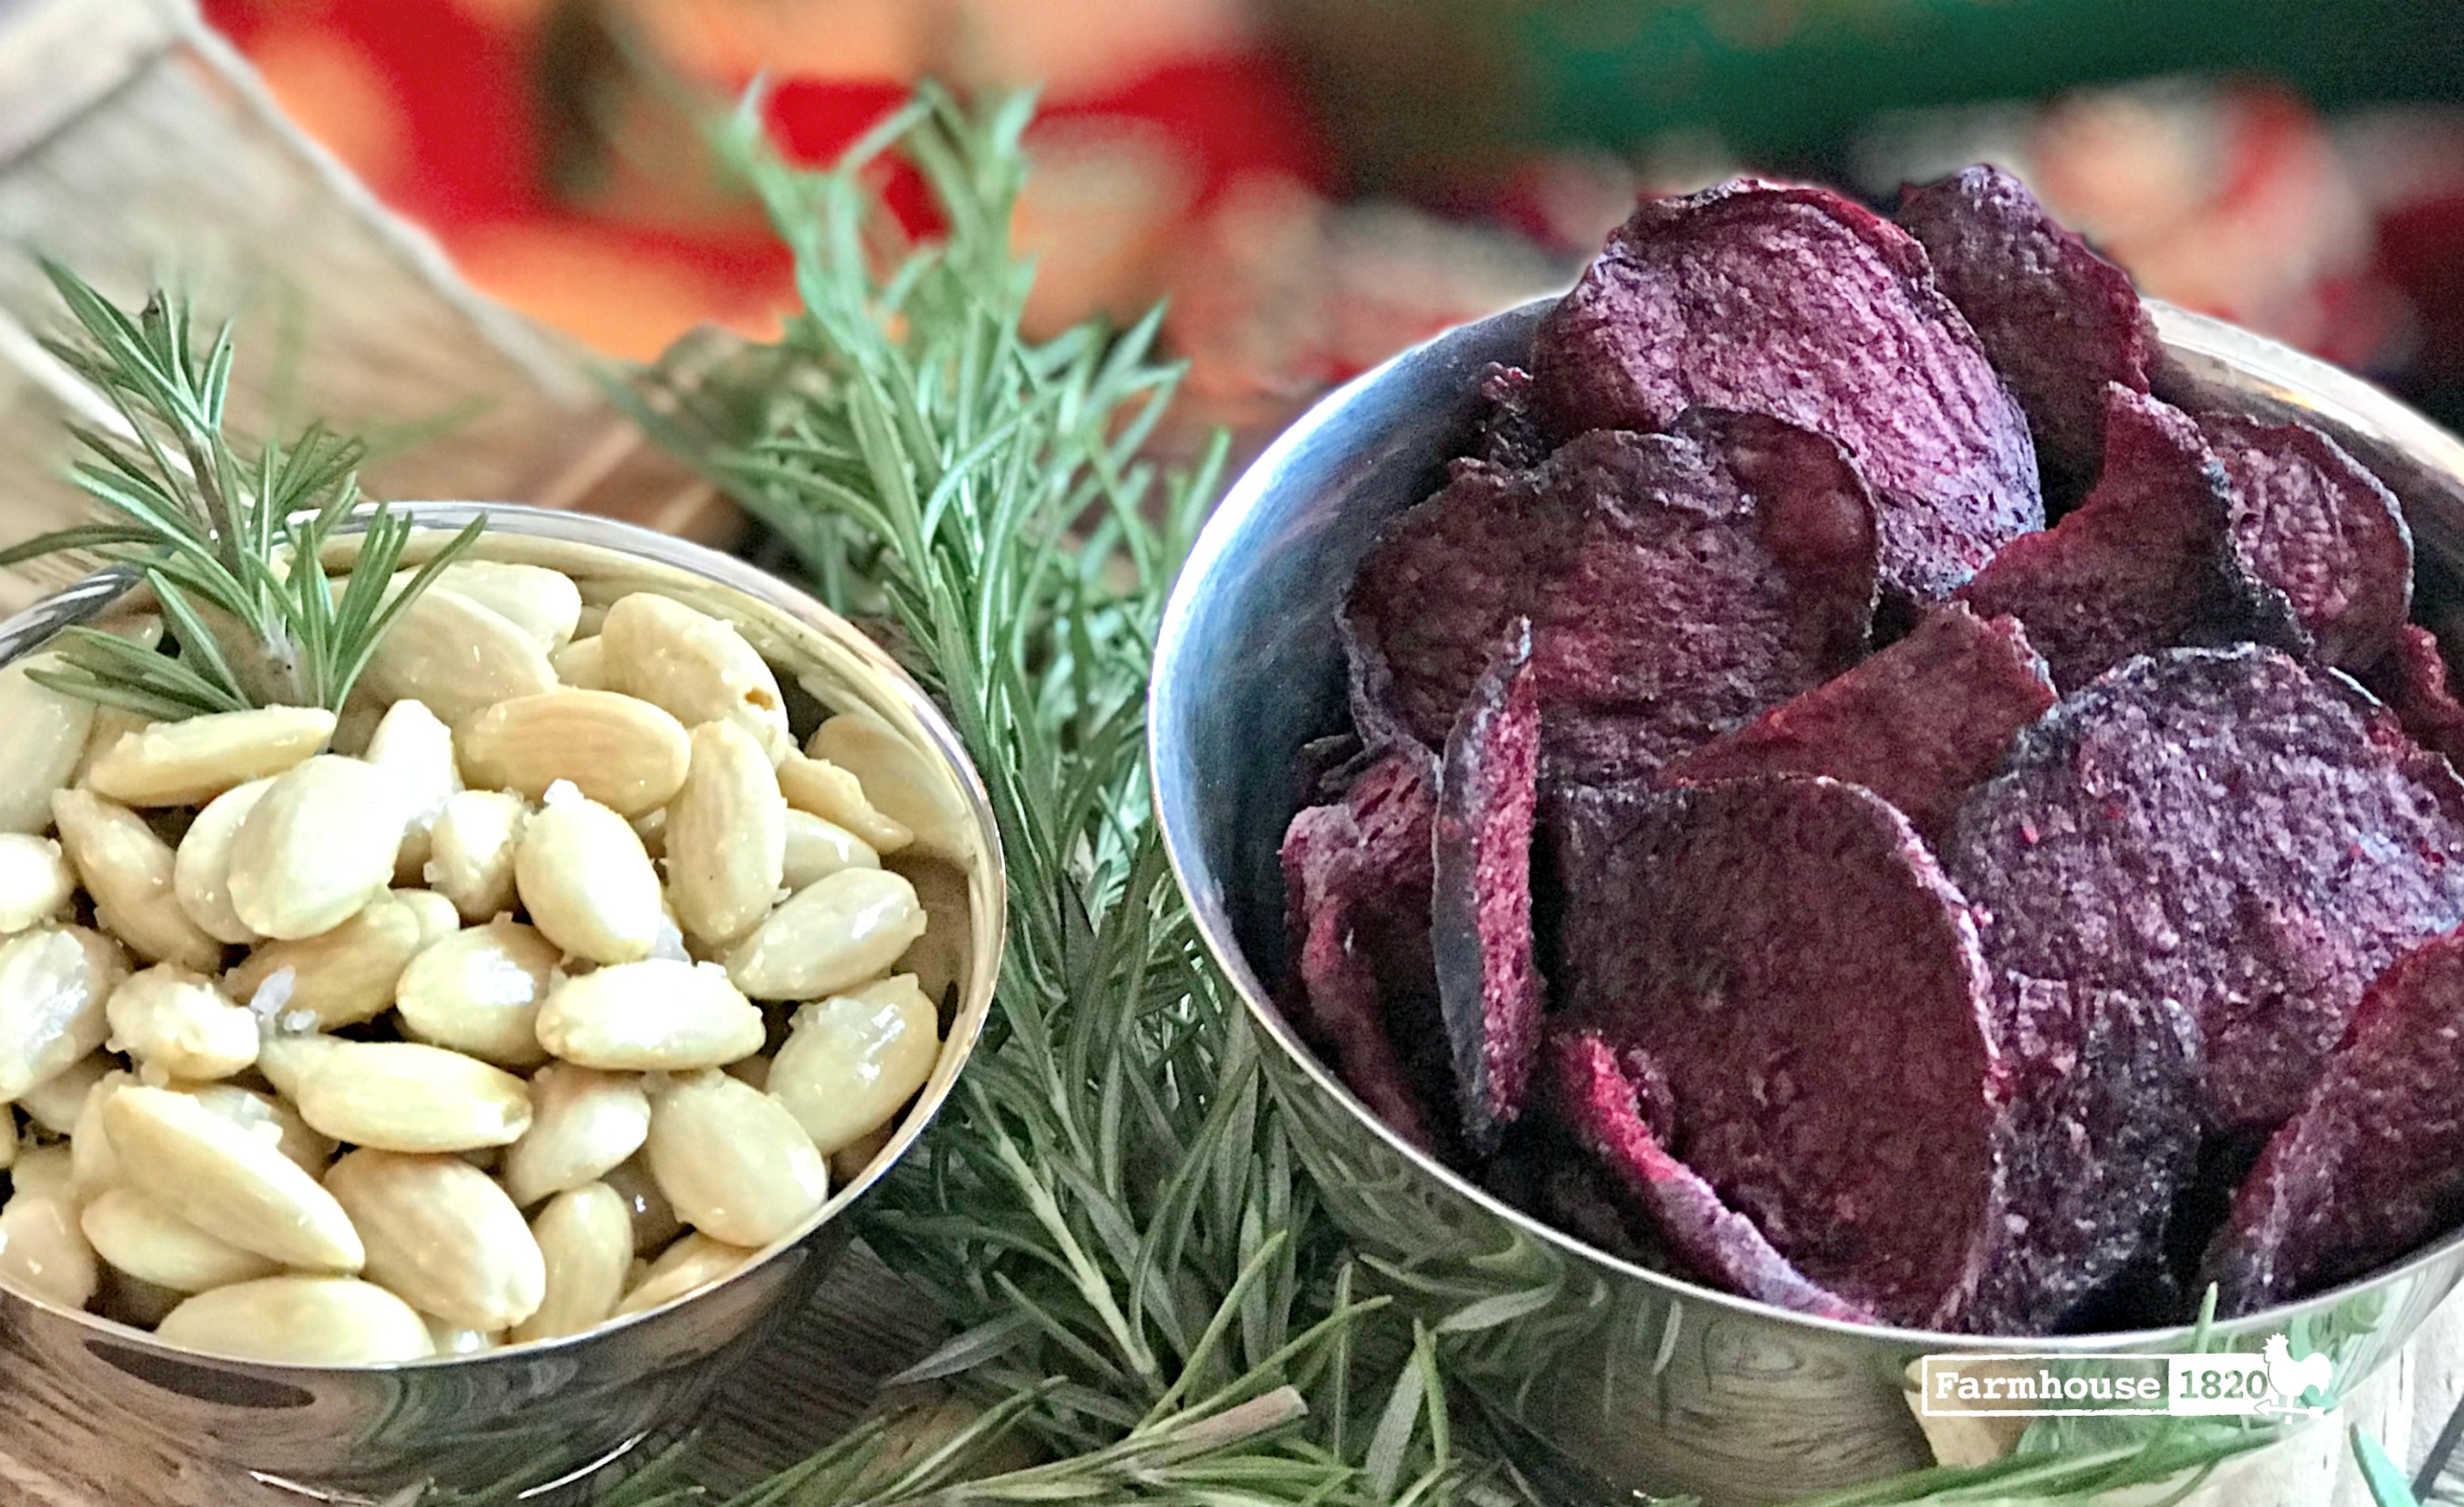 holiday entertaining - rosemary infused almonds and beet chips